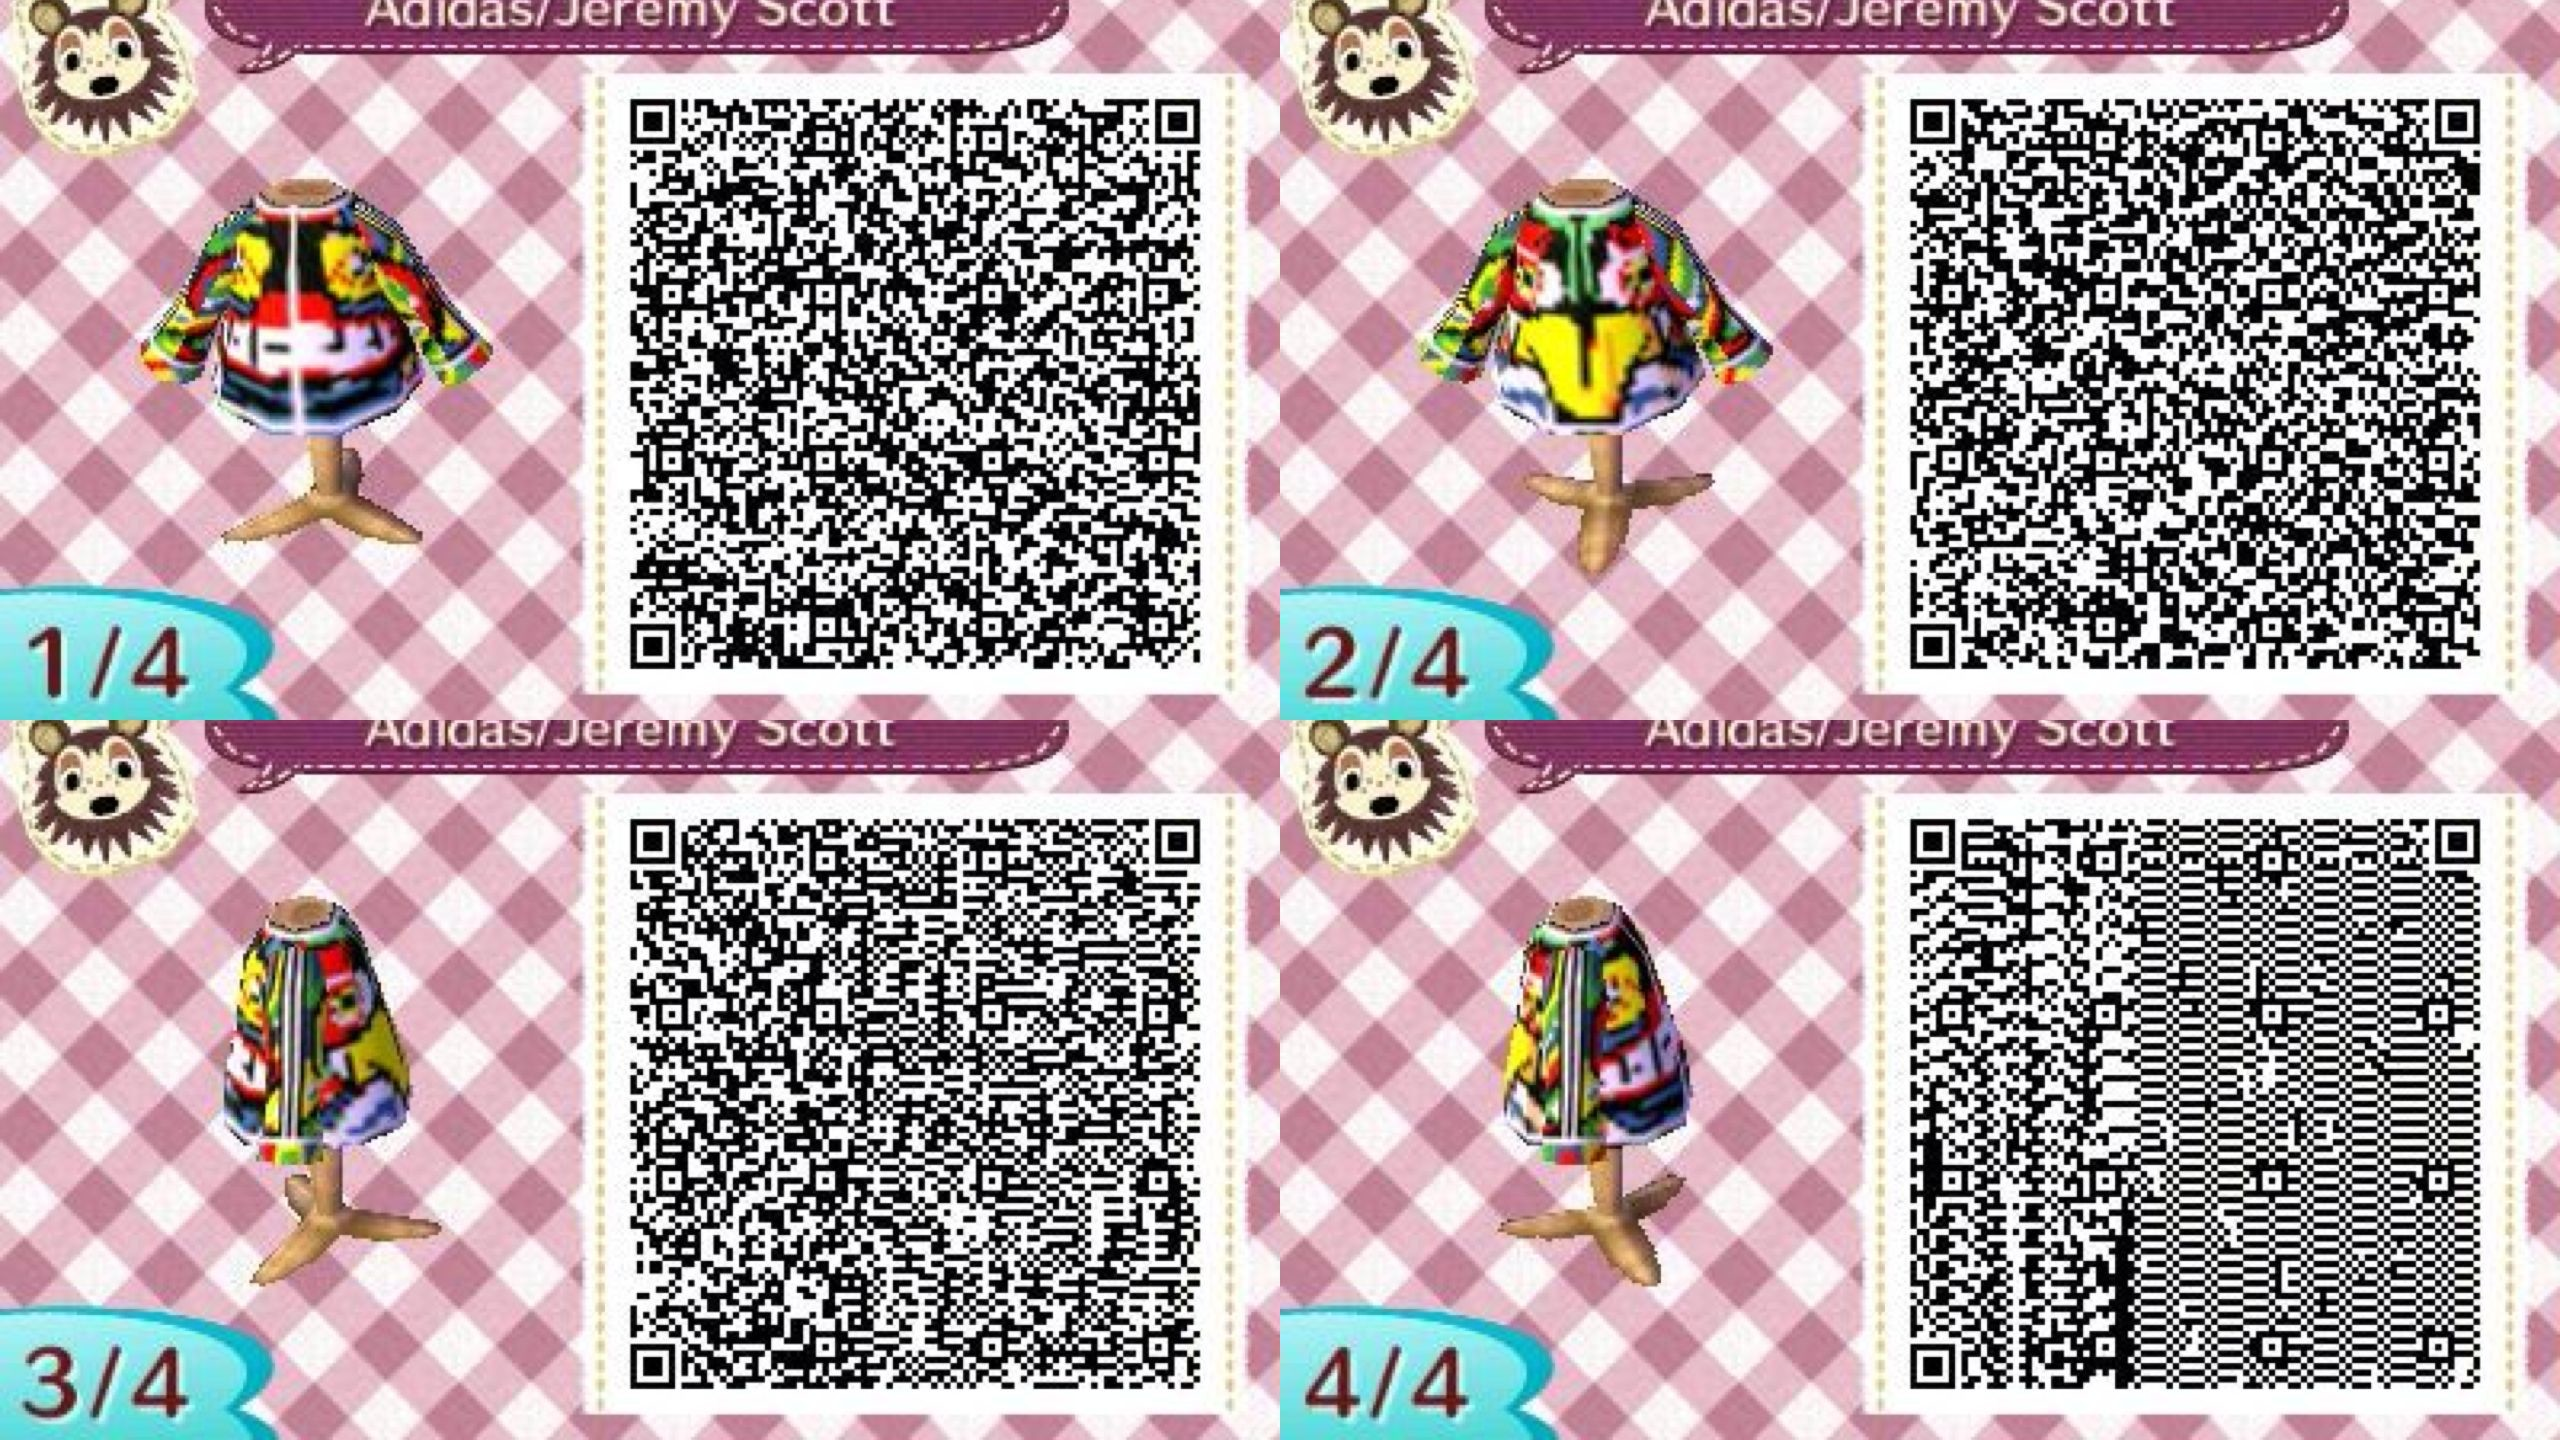 Res: 2560x1440, Jeremy Scott Jacket for Adidas. Animal Crossing New Leaf QR code